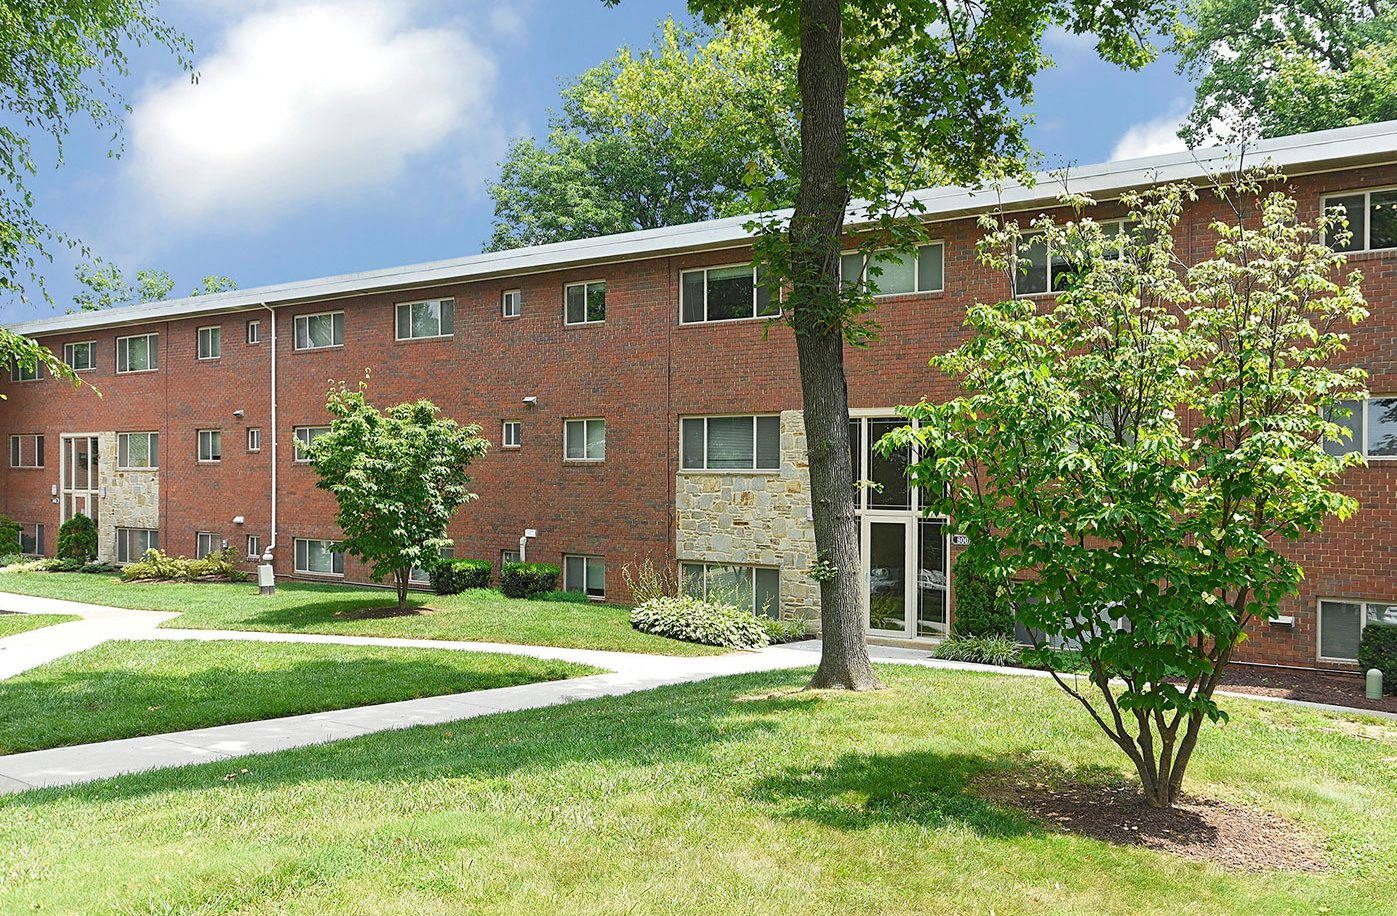 Beautifully-Landscaped Grounds at Cardiff Hall Apartments, Towson, MD, 21204